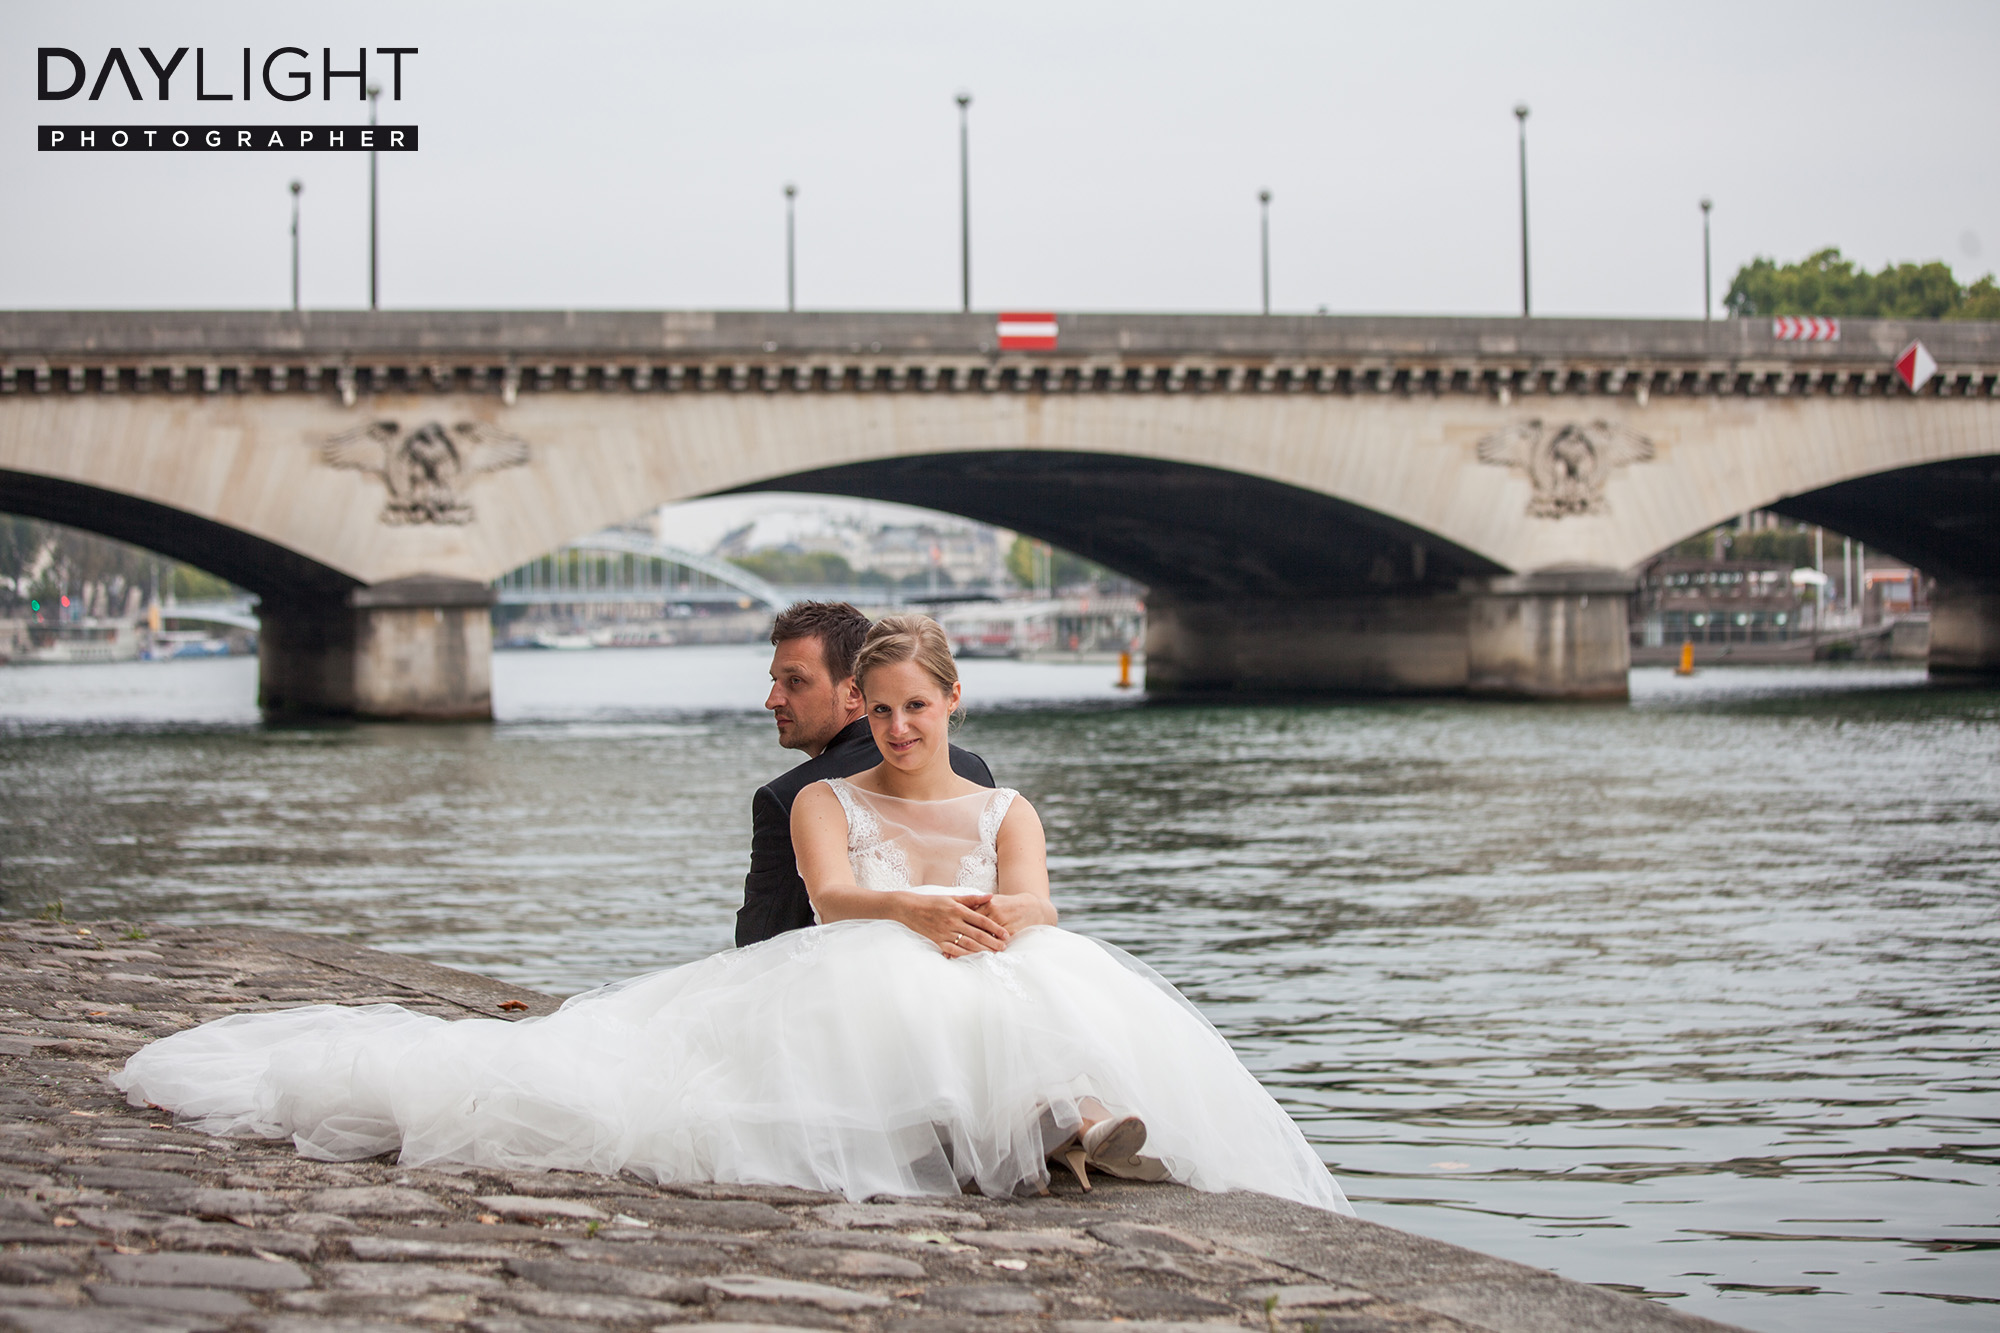 wedding photographer in paris booking